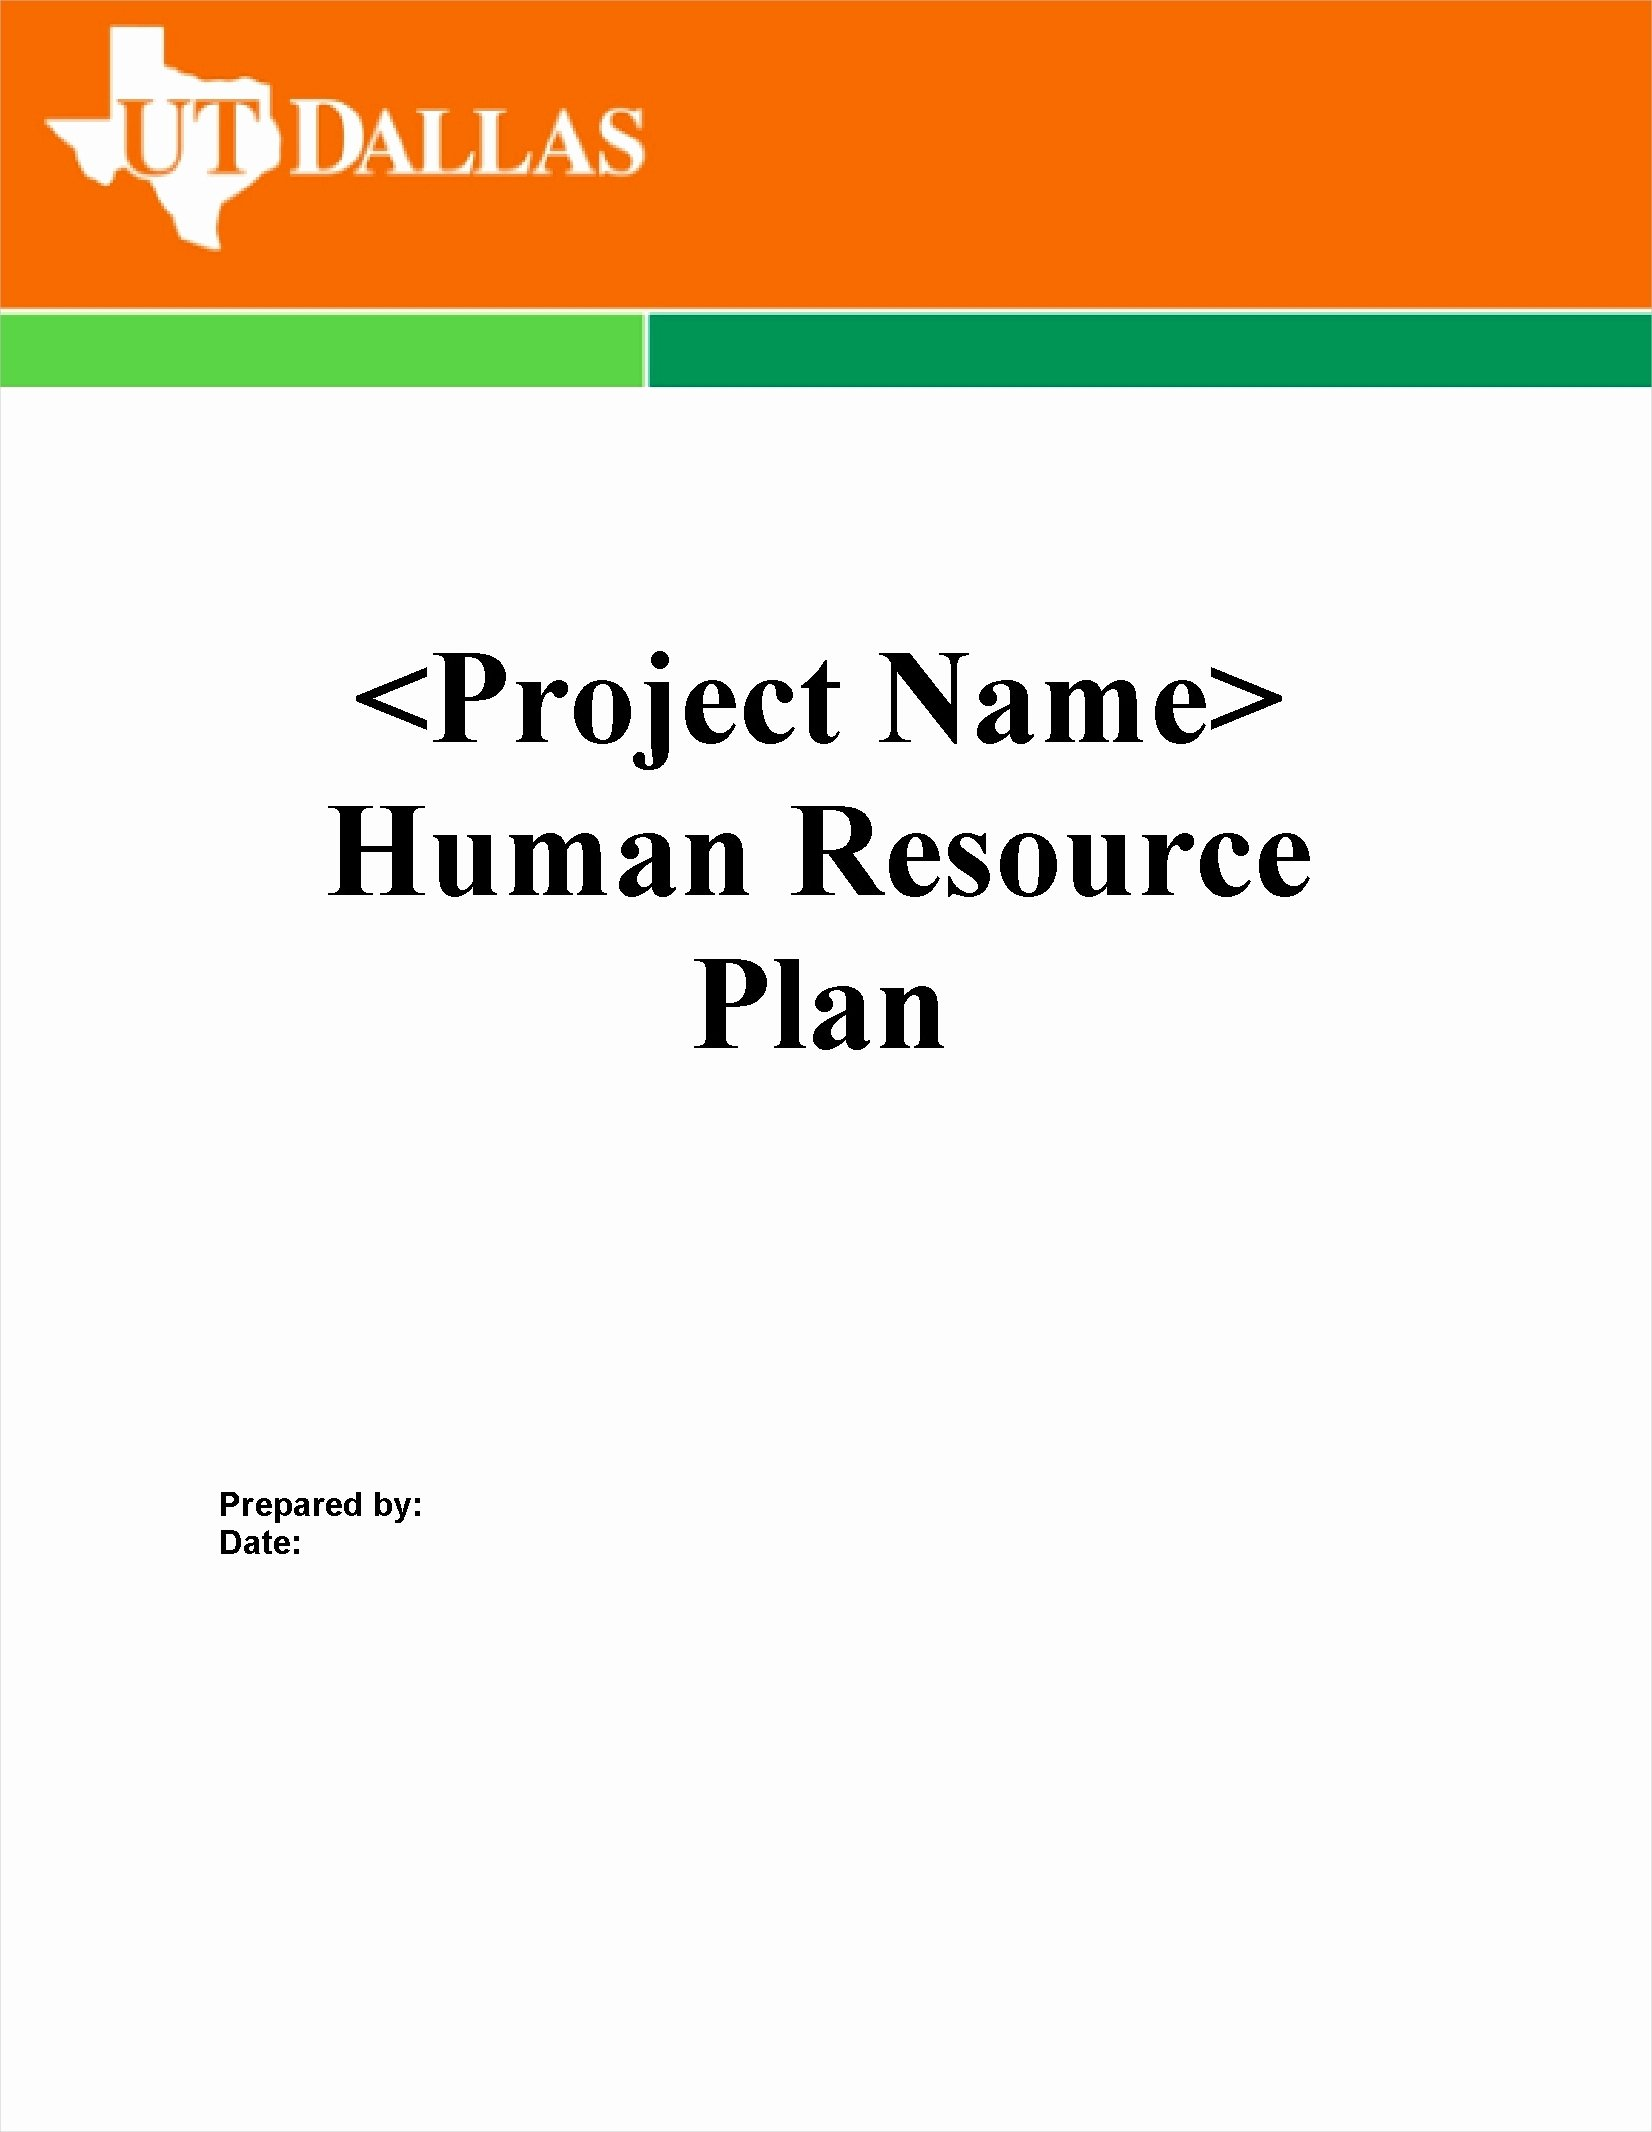 Human Resource Plan Template New 29 Hr Templates Examples & Samples